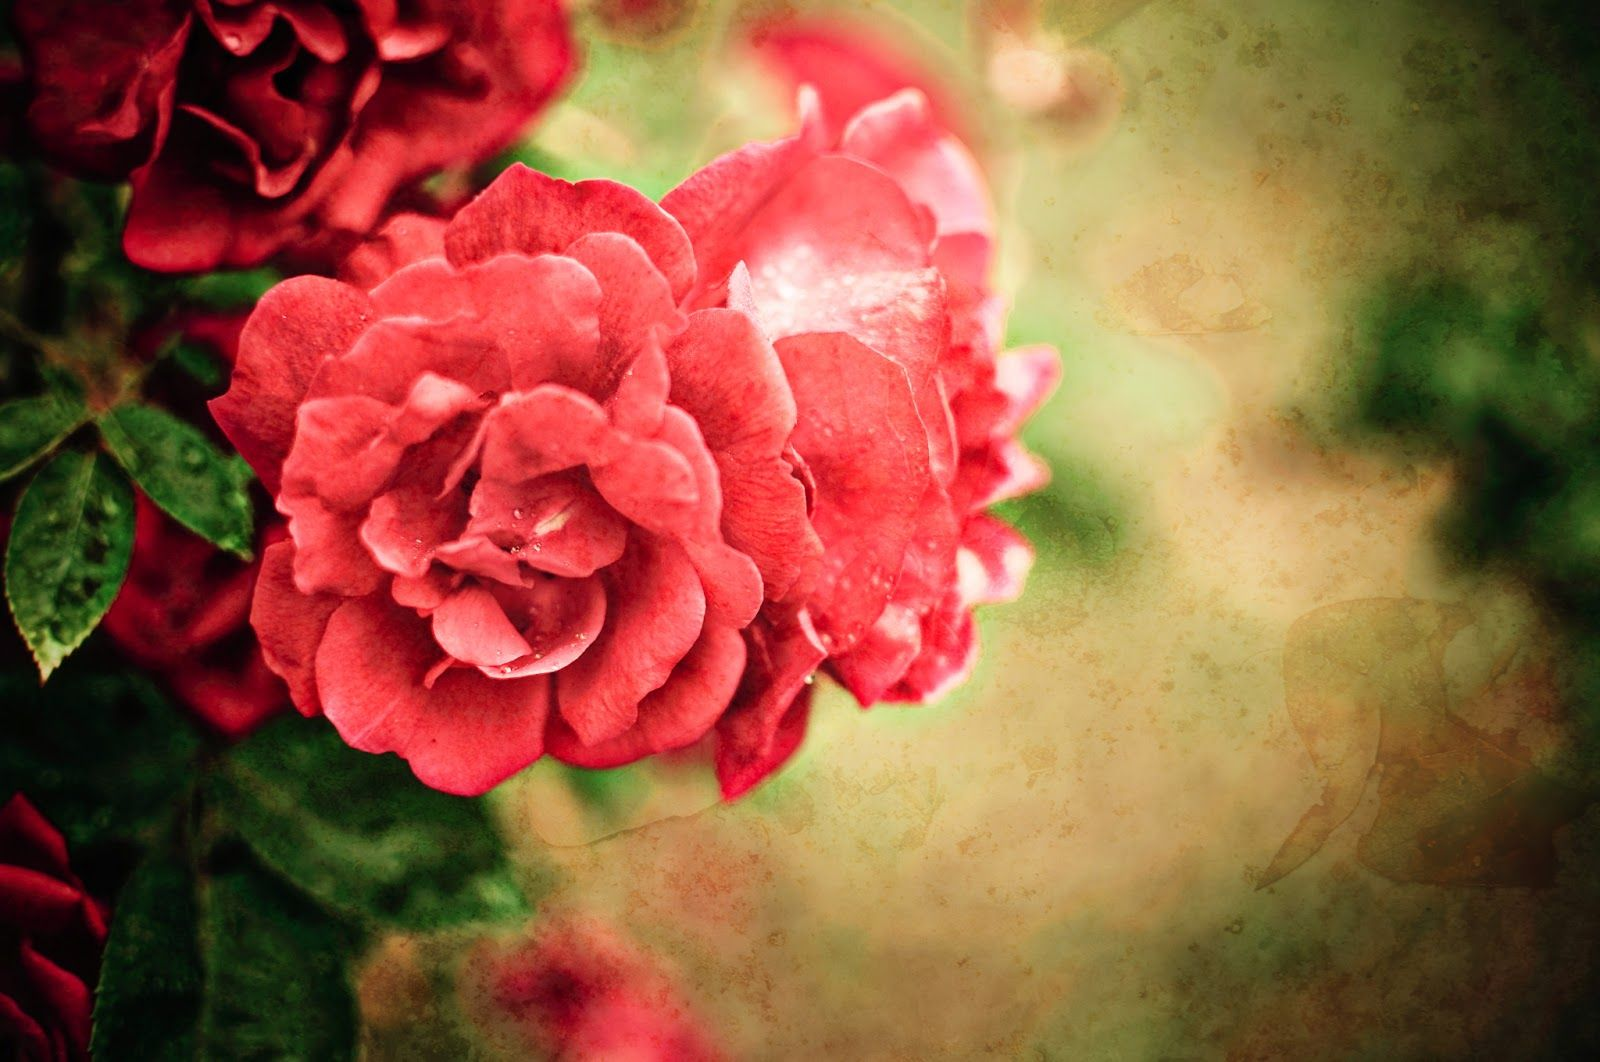 Pin by Sheetal Wavhal on flowers Rose background